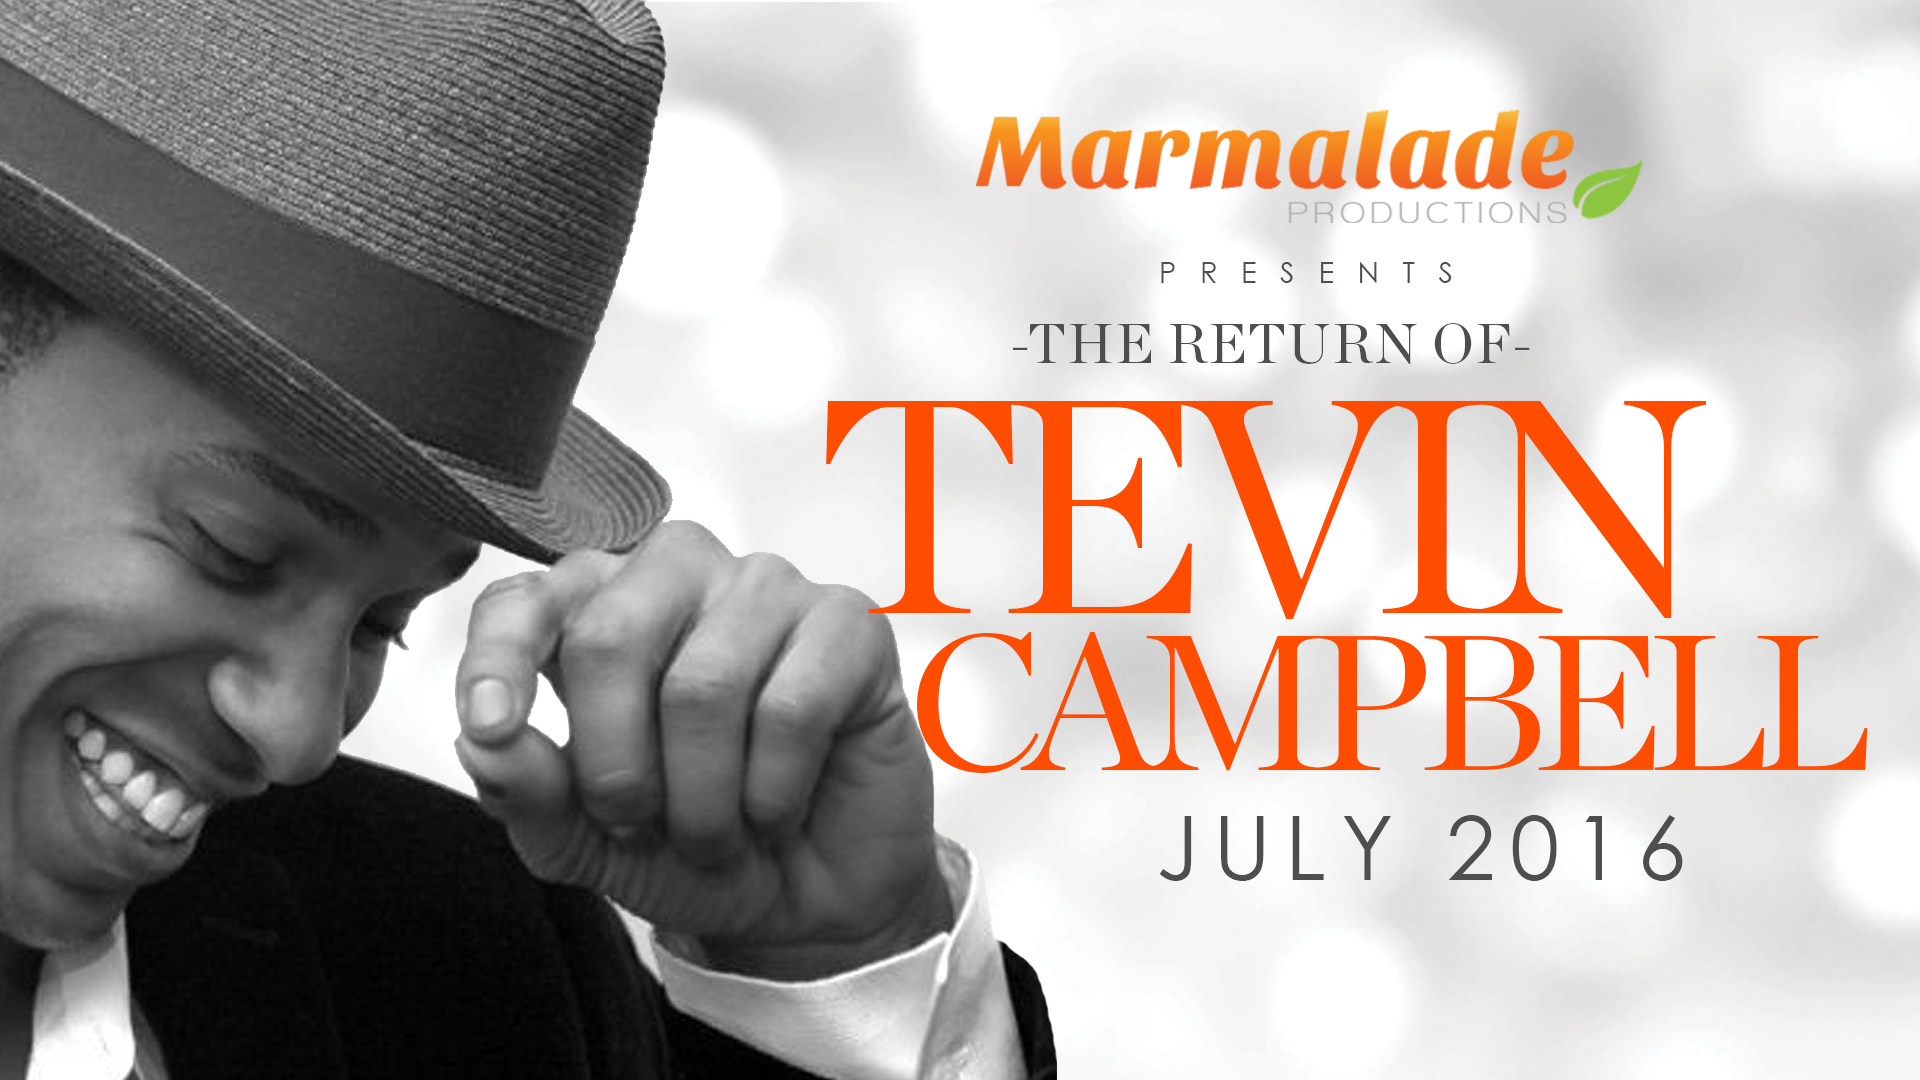 Tevin Campbell performed a concert in July 2016 in Cape Town